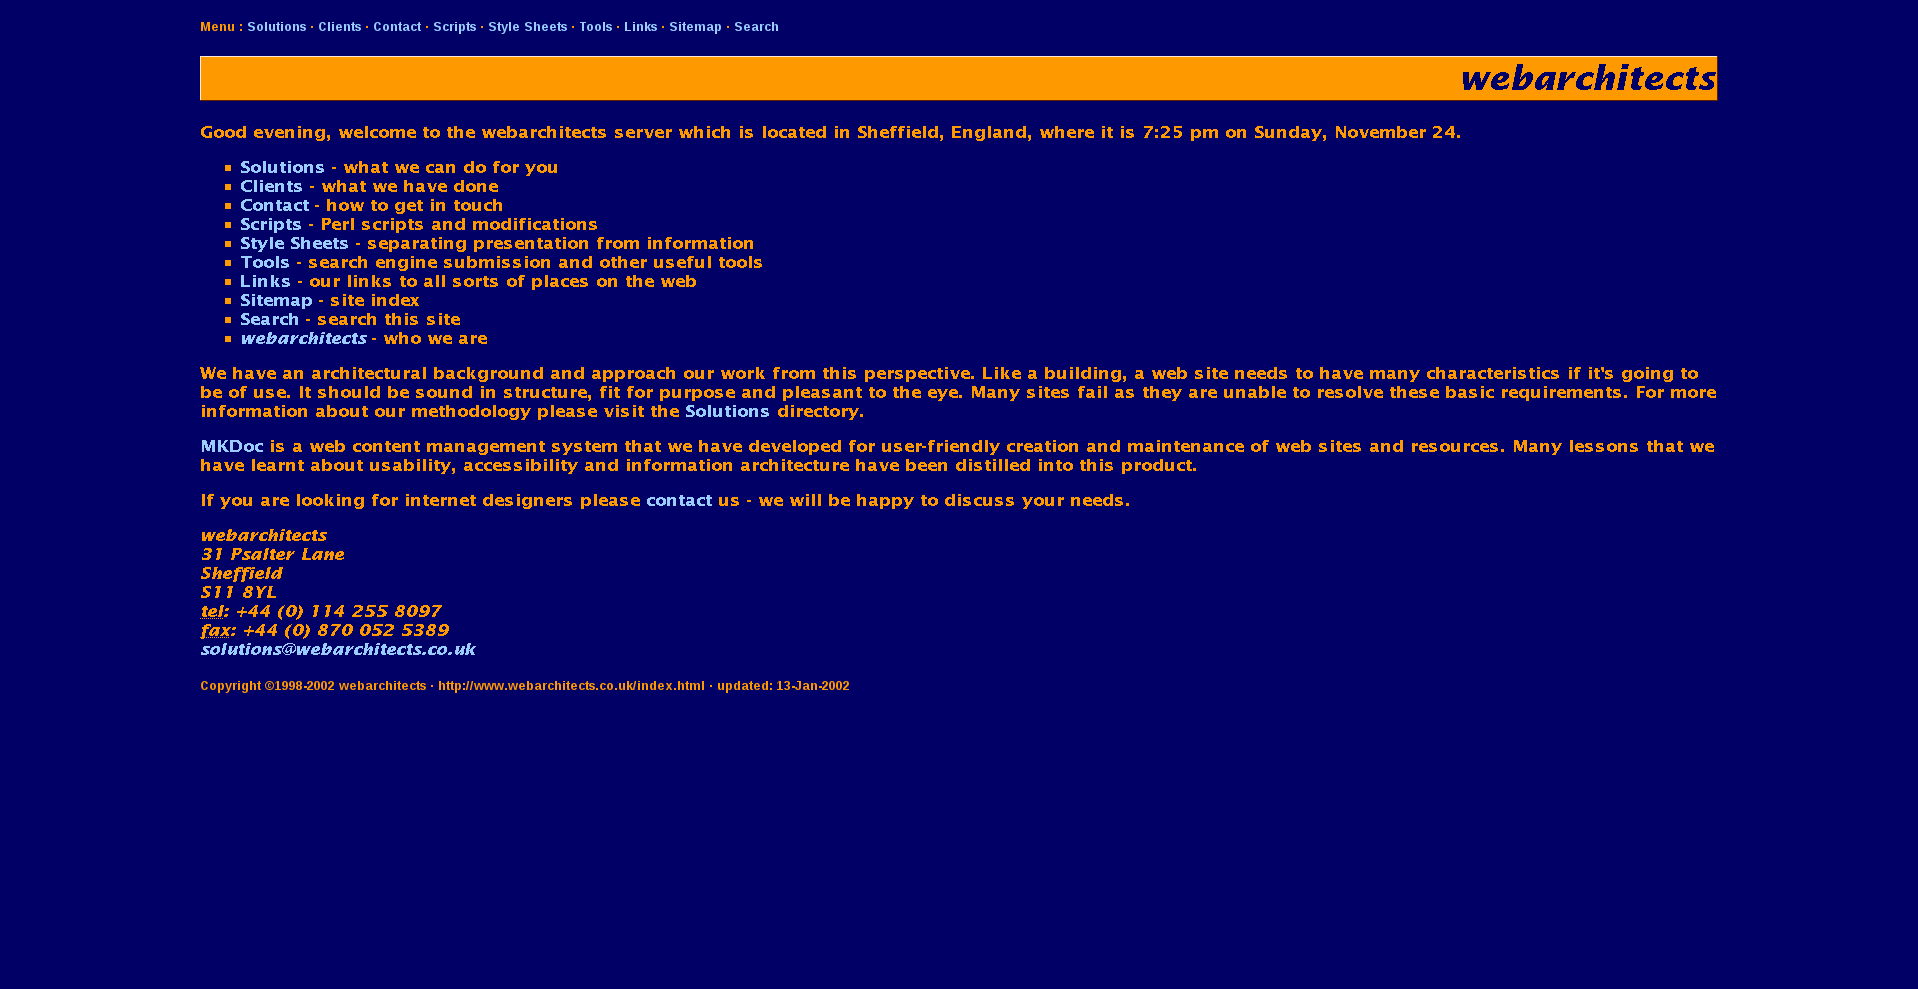 Screenshot of www.webarchitects.co.uk from 2002